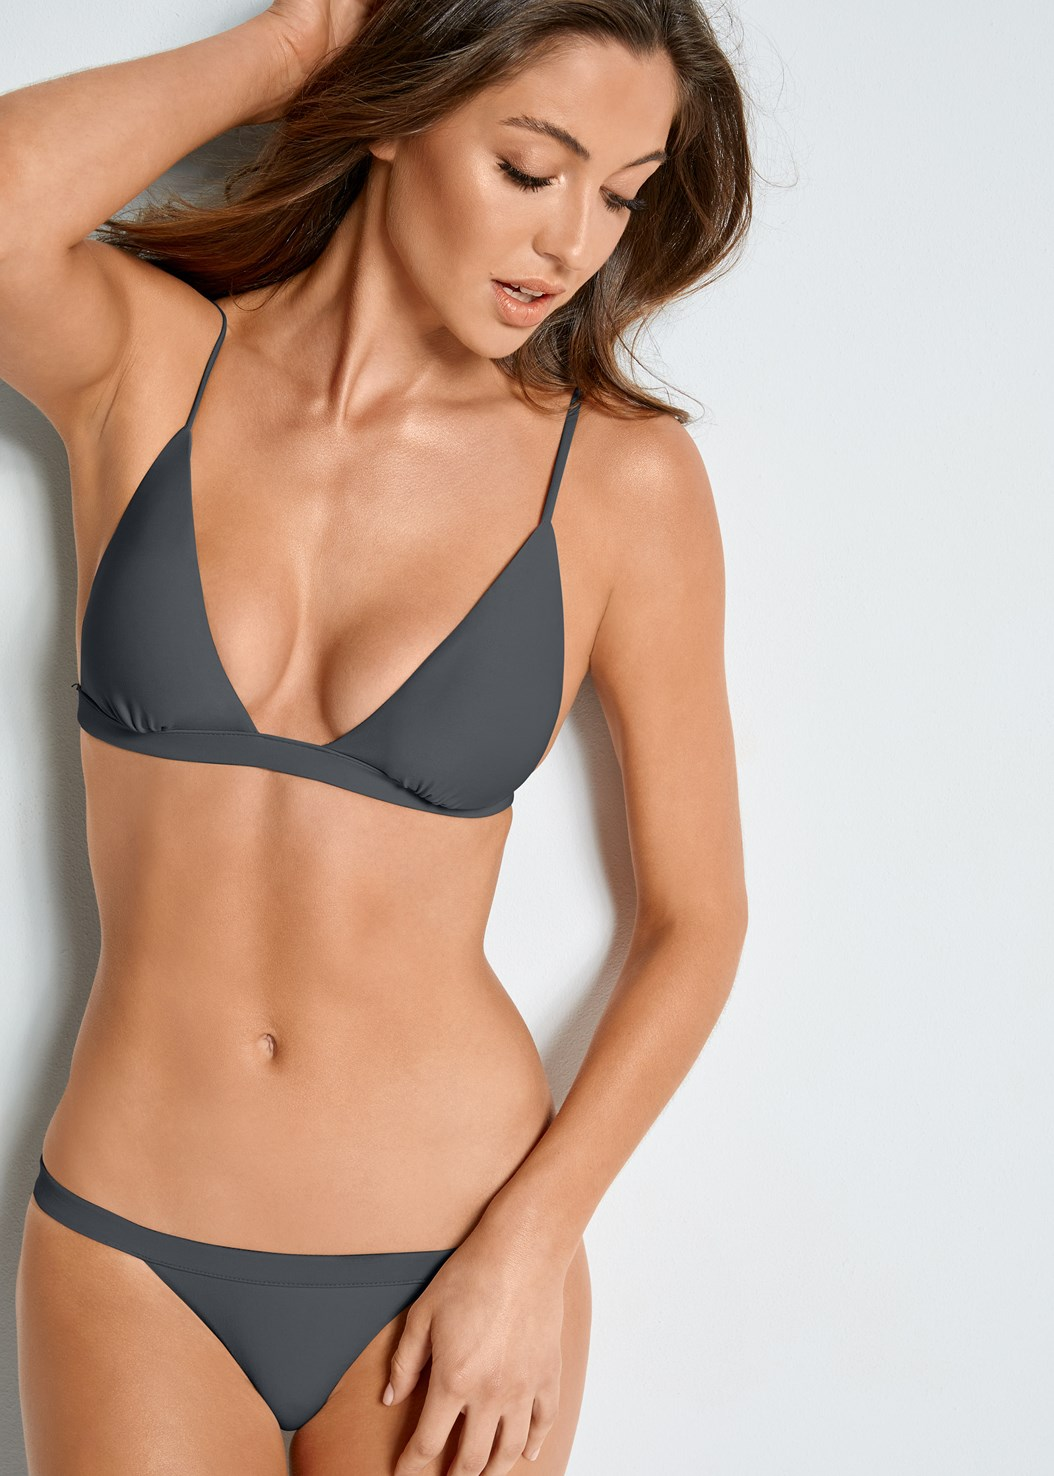 Versatility By Venus ™ Fixed Triangle Bikini Top,Versatility By Venus ™ Reversible Retro Bottom